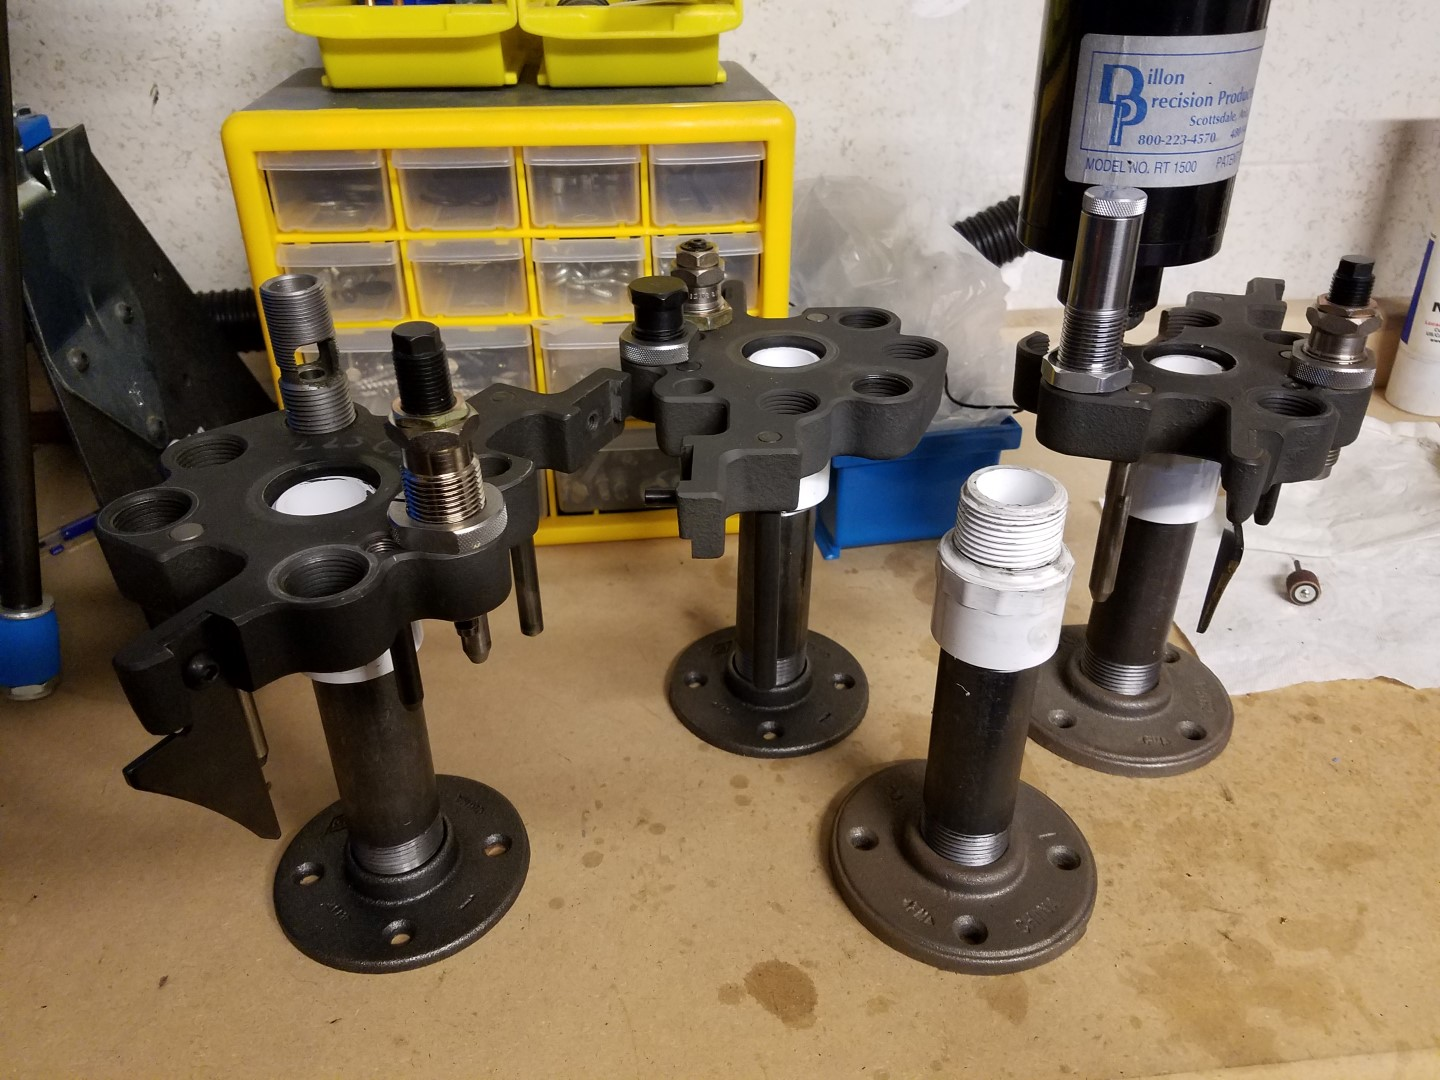 $10 DIY Toolhead stand for 1050 - Dillon Precision Reloading